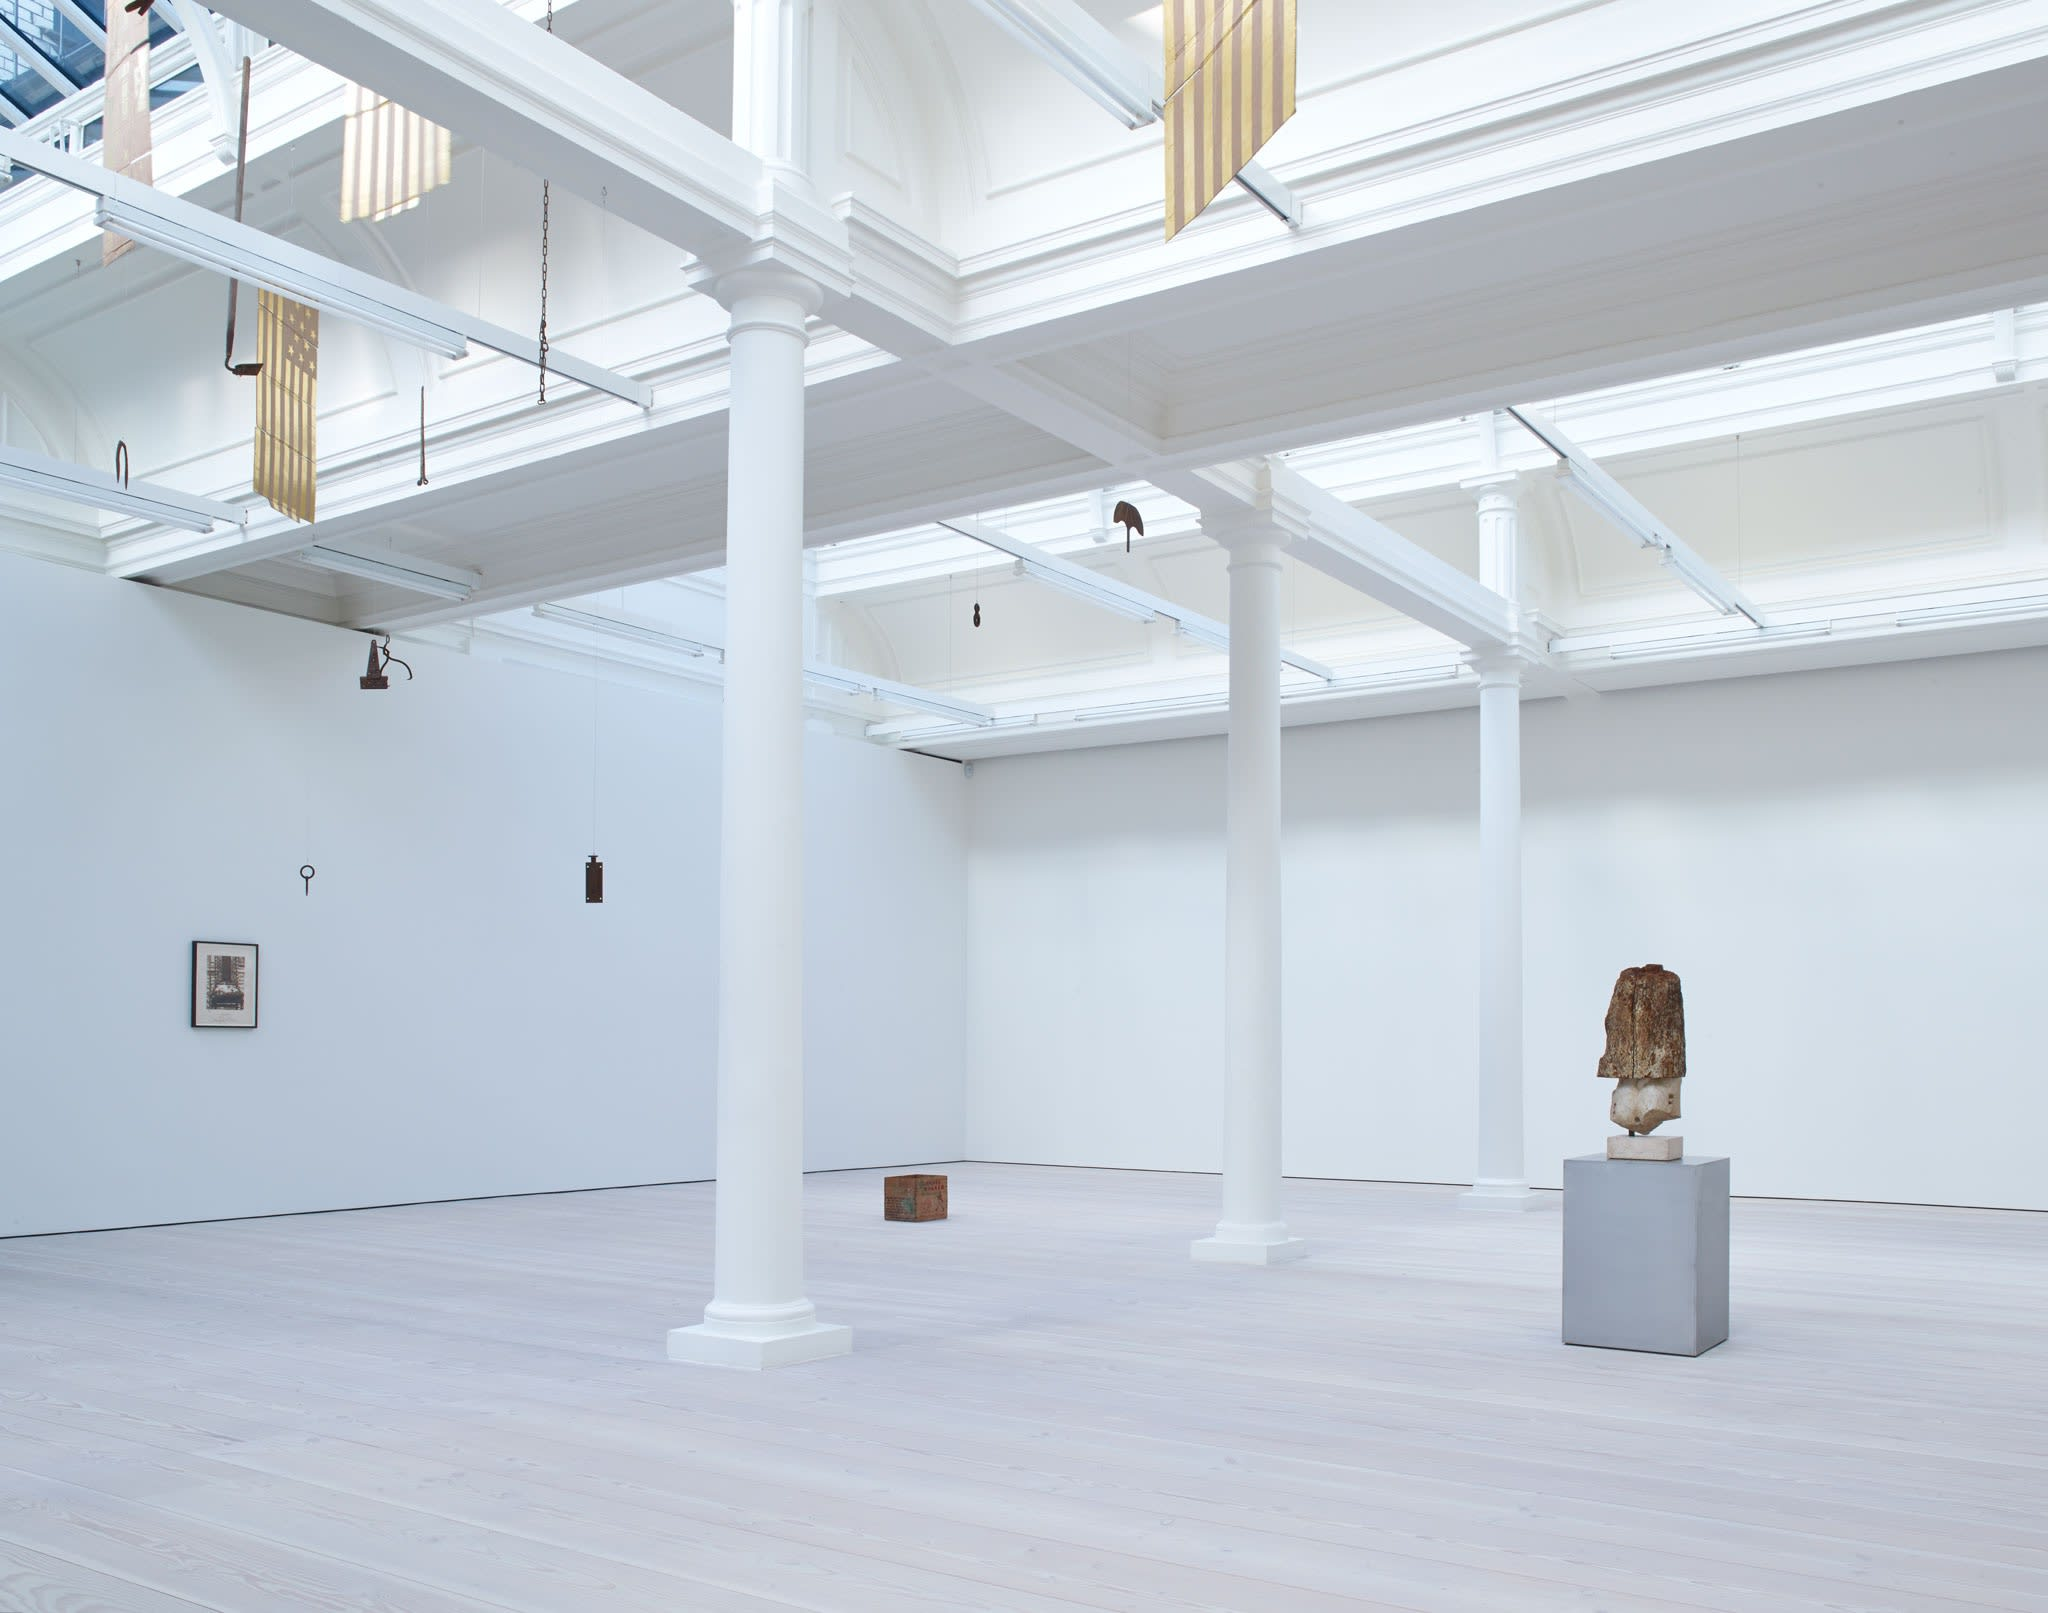 In a large white space with a long glass skylight, sculptures hang from the ceiling - most seem to be American flags, with 13 stars, made out of gold painted cardboard. A small cardboard box sits on the floor as well.